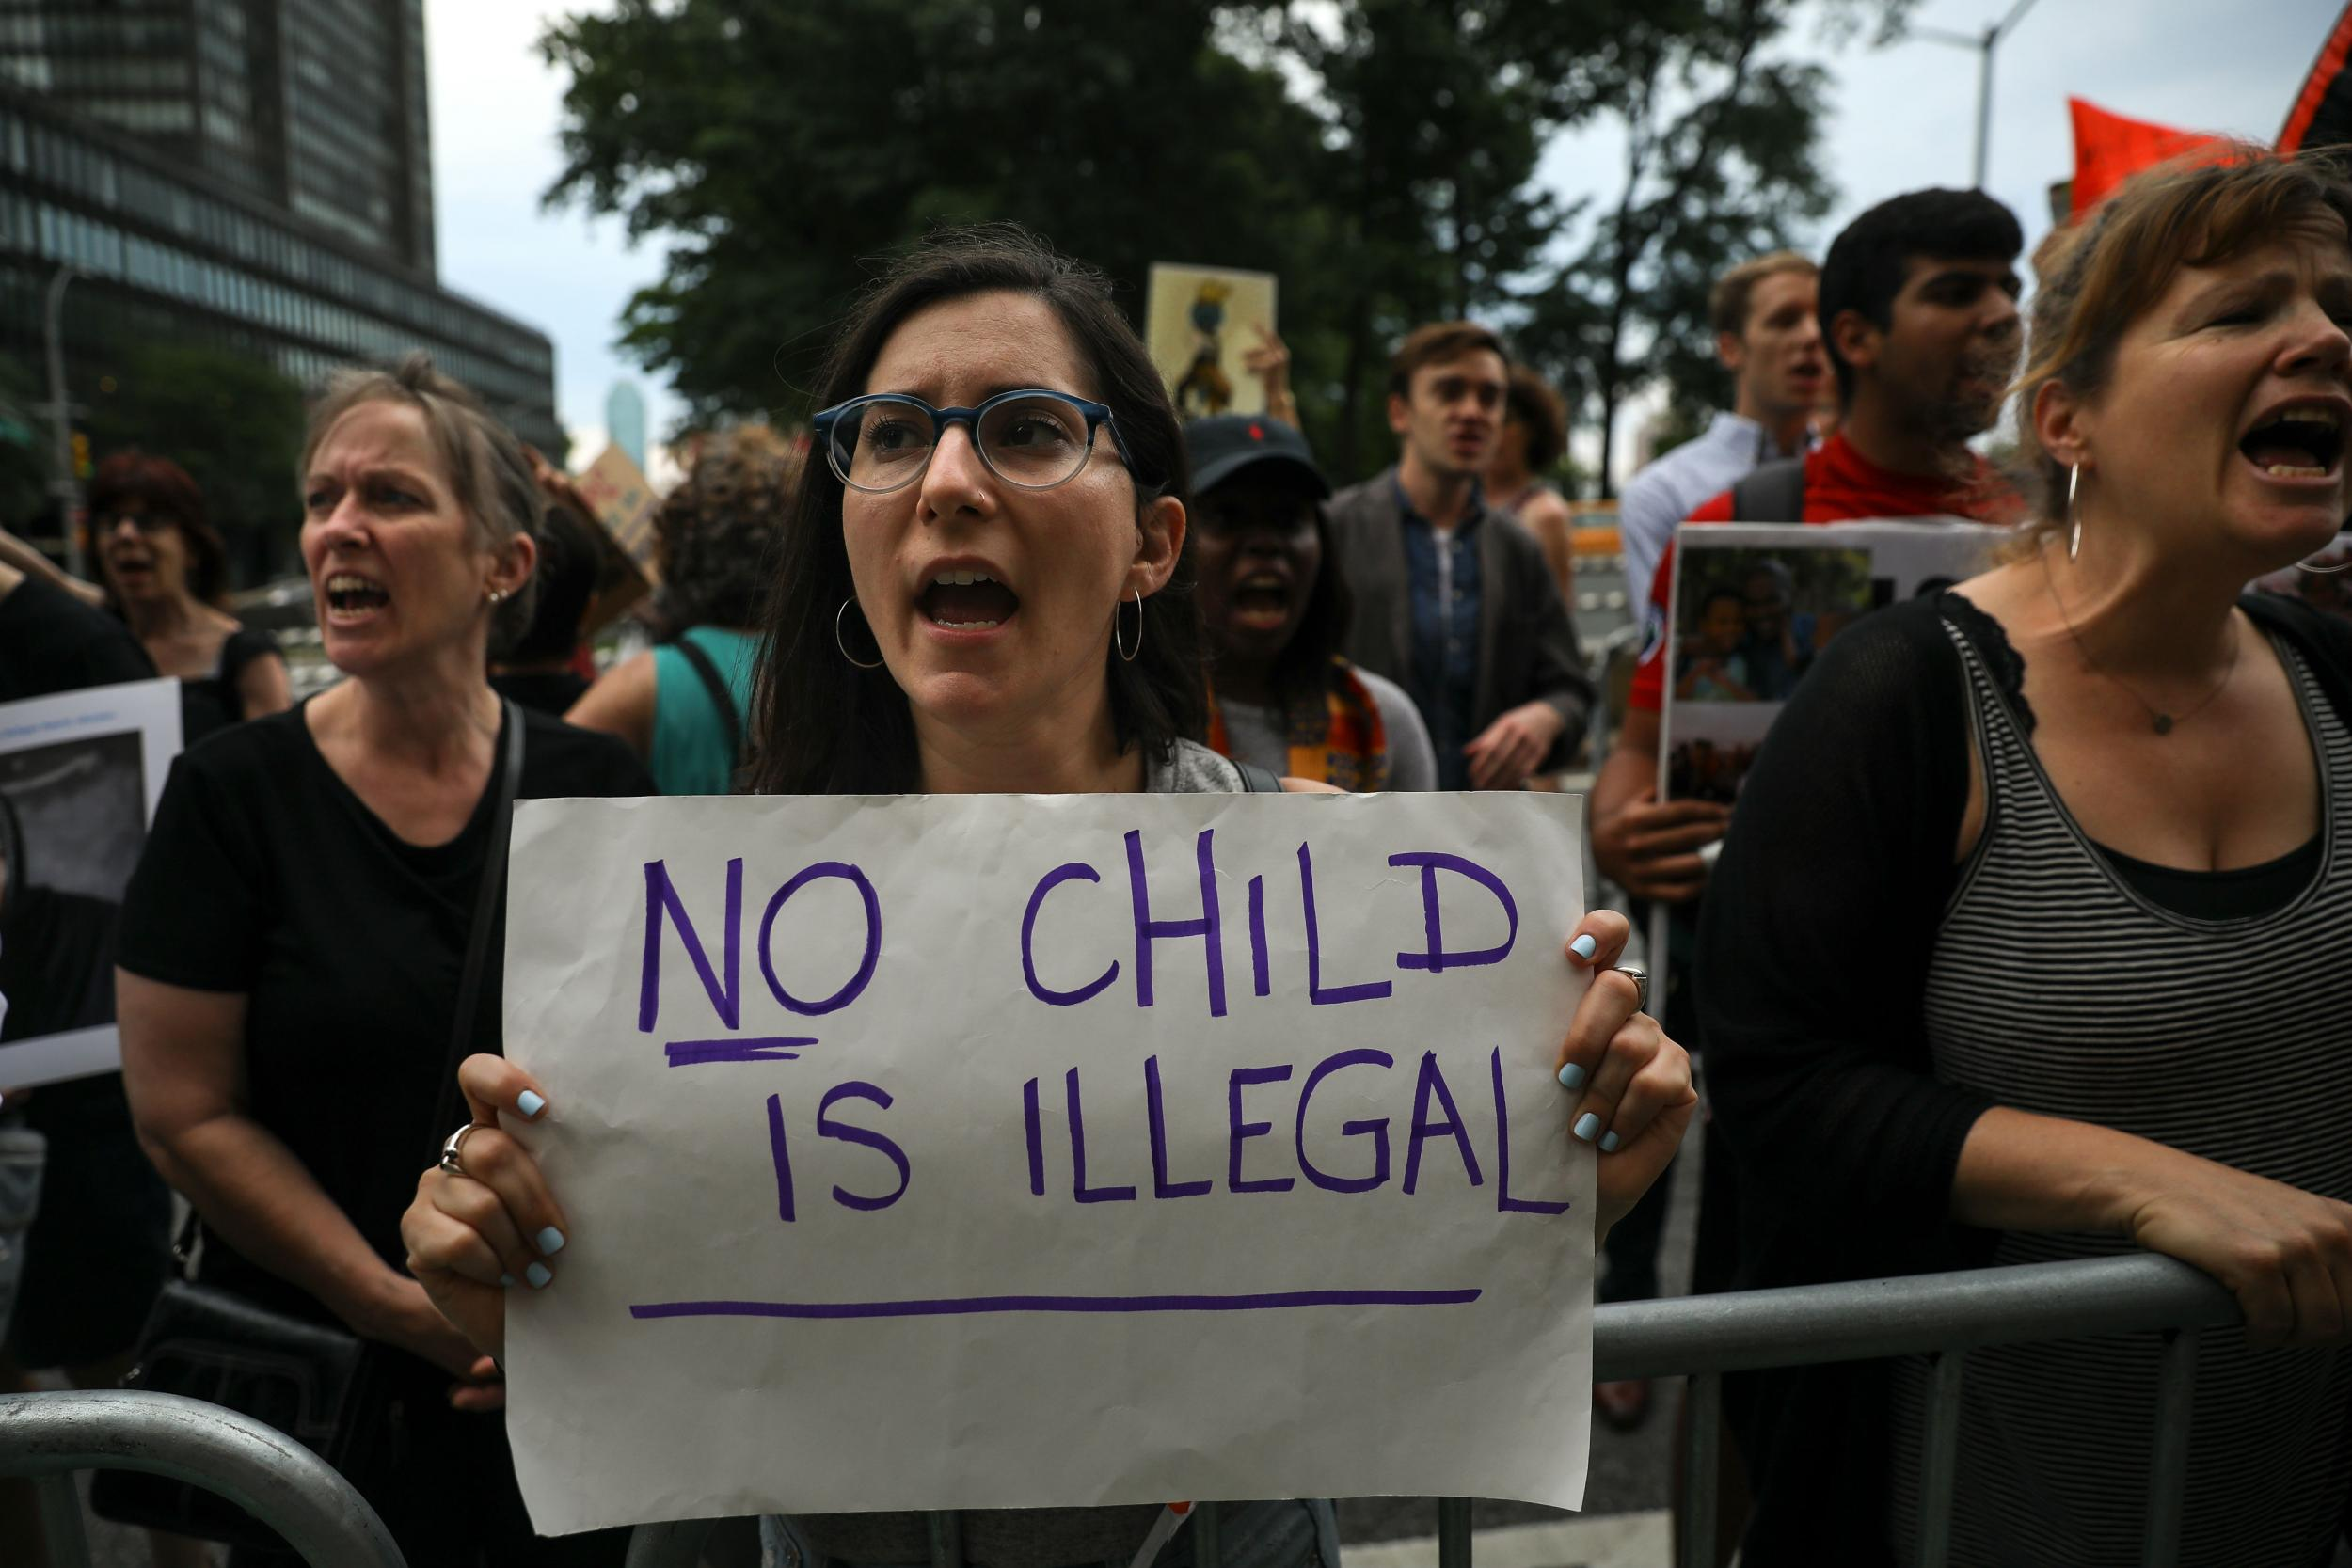 Questions raised over Trump's quick-fix end to separating migrant families as republicans struggle to pass bill